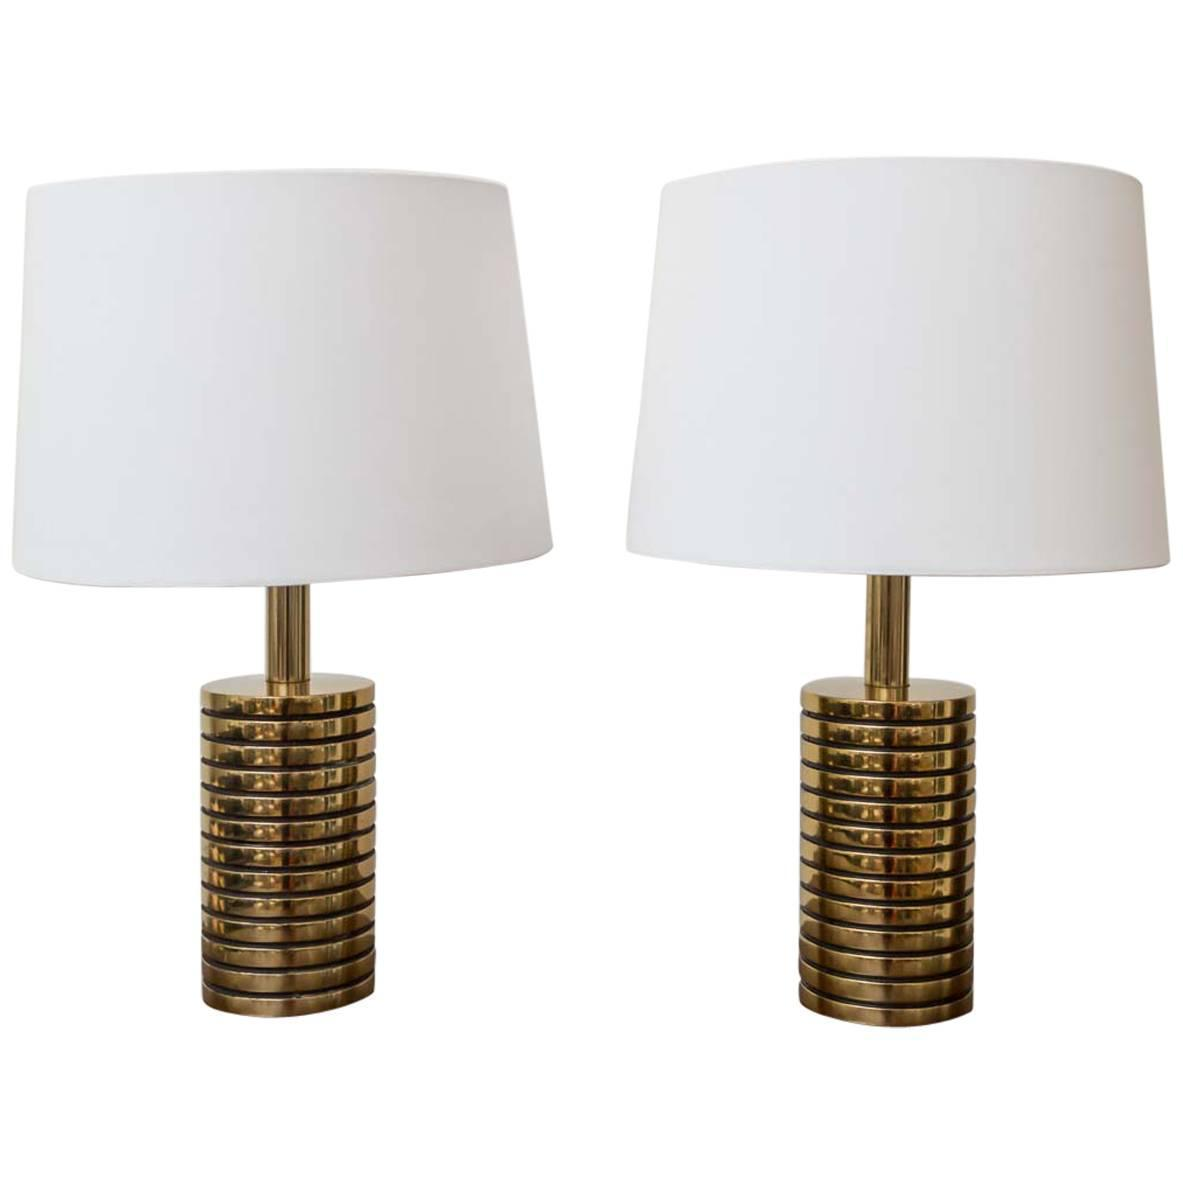 pair of brass table lamps at 1stdibs. Black Bedroom Furniture Sets. Home Design Ideas